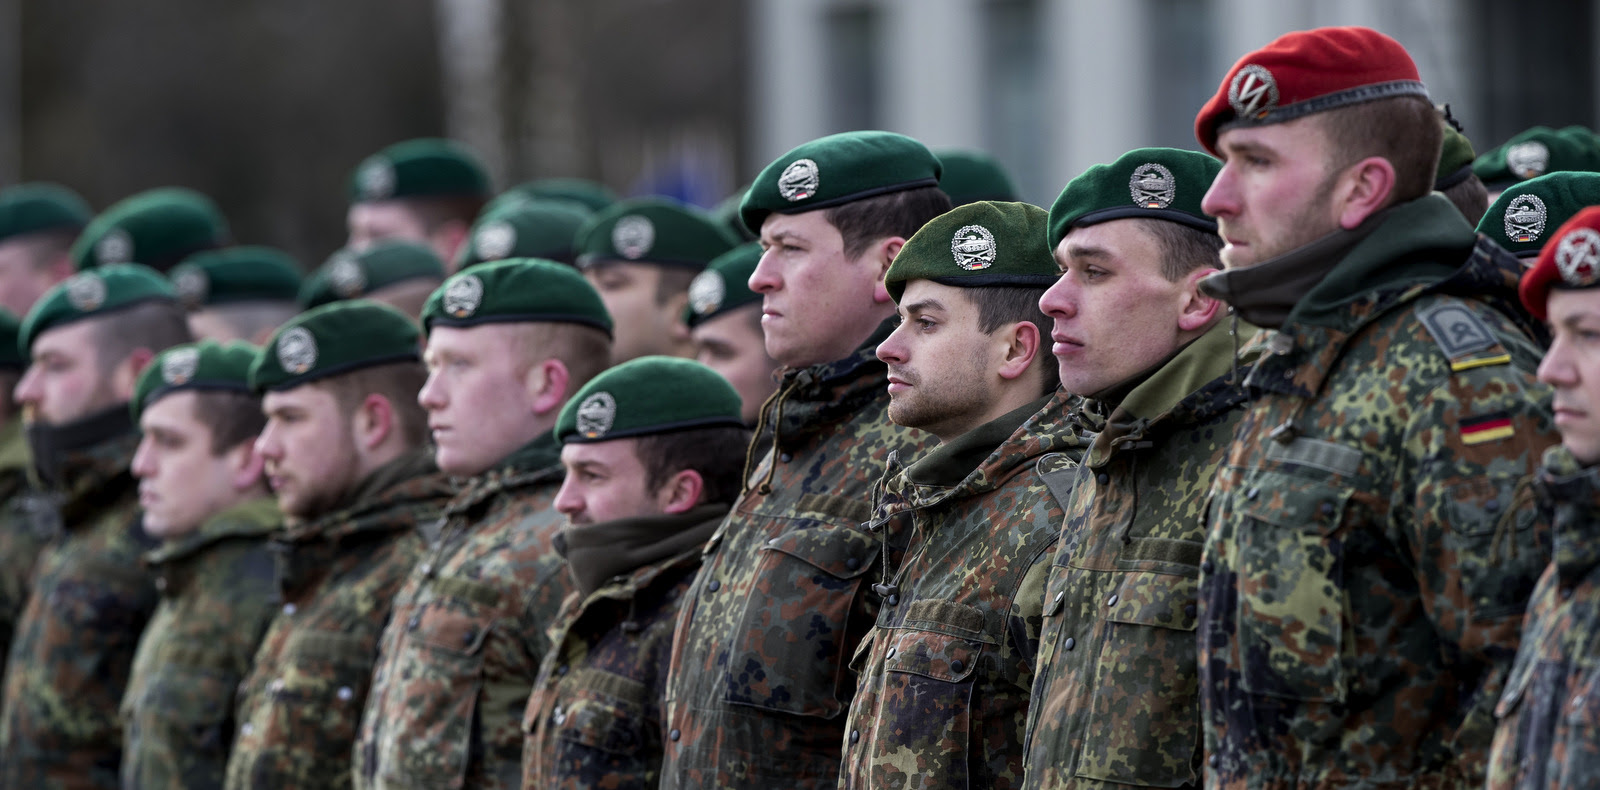 German soldiers take part in a NATO welcome ceremony at the Rukla military base in Vilnius, Lithuania, Feb. 7, 2017. T (AP/Mindaugas Kulbis)